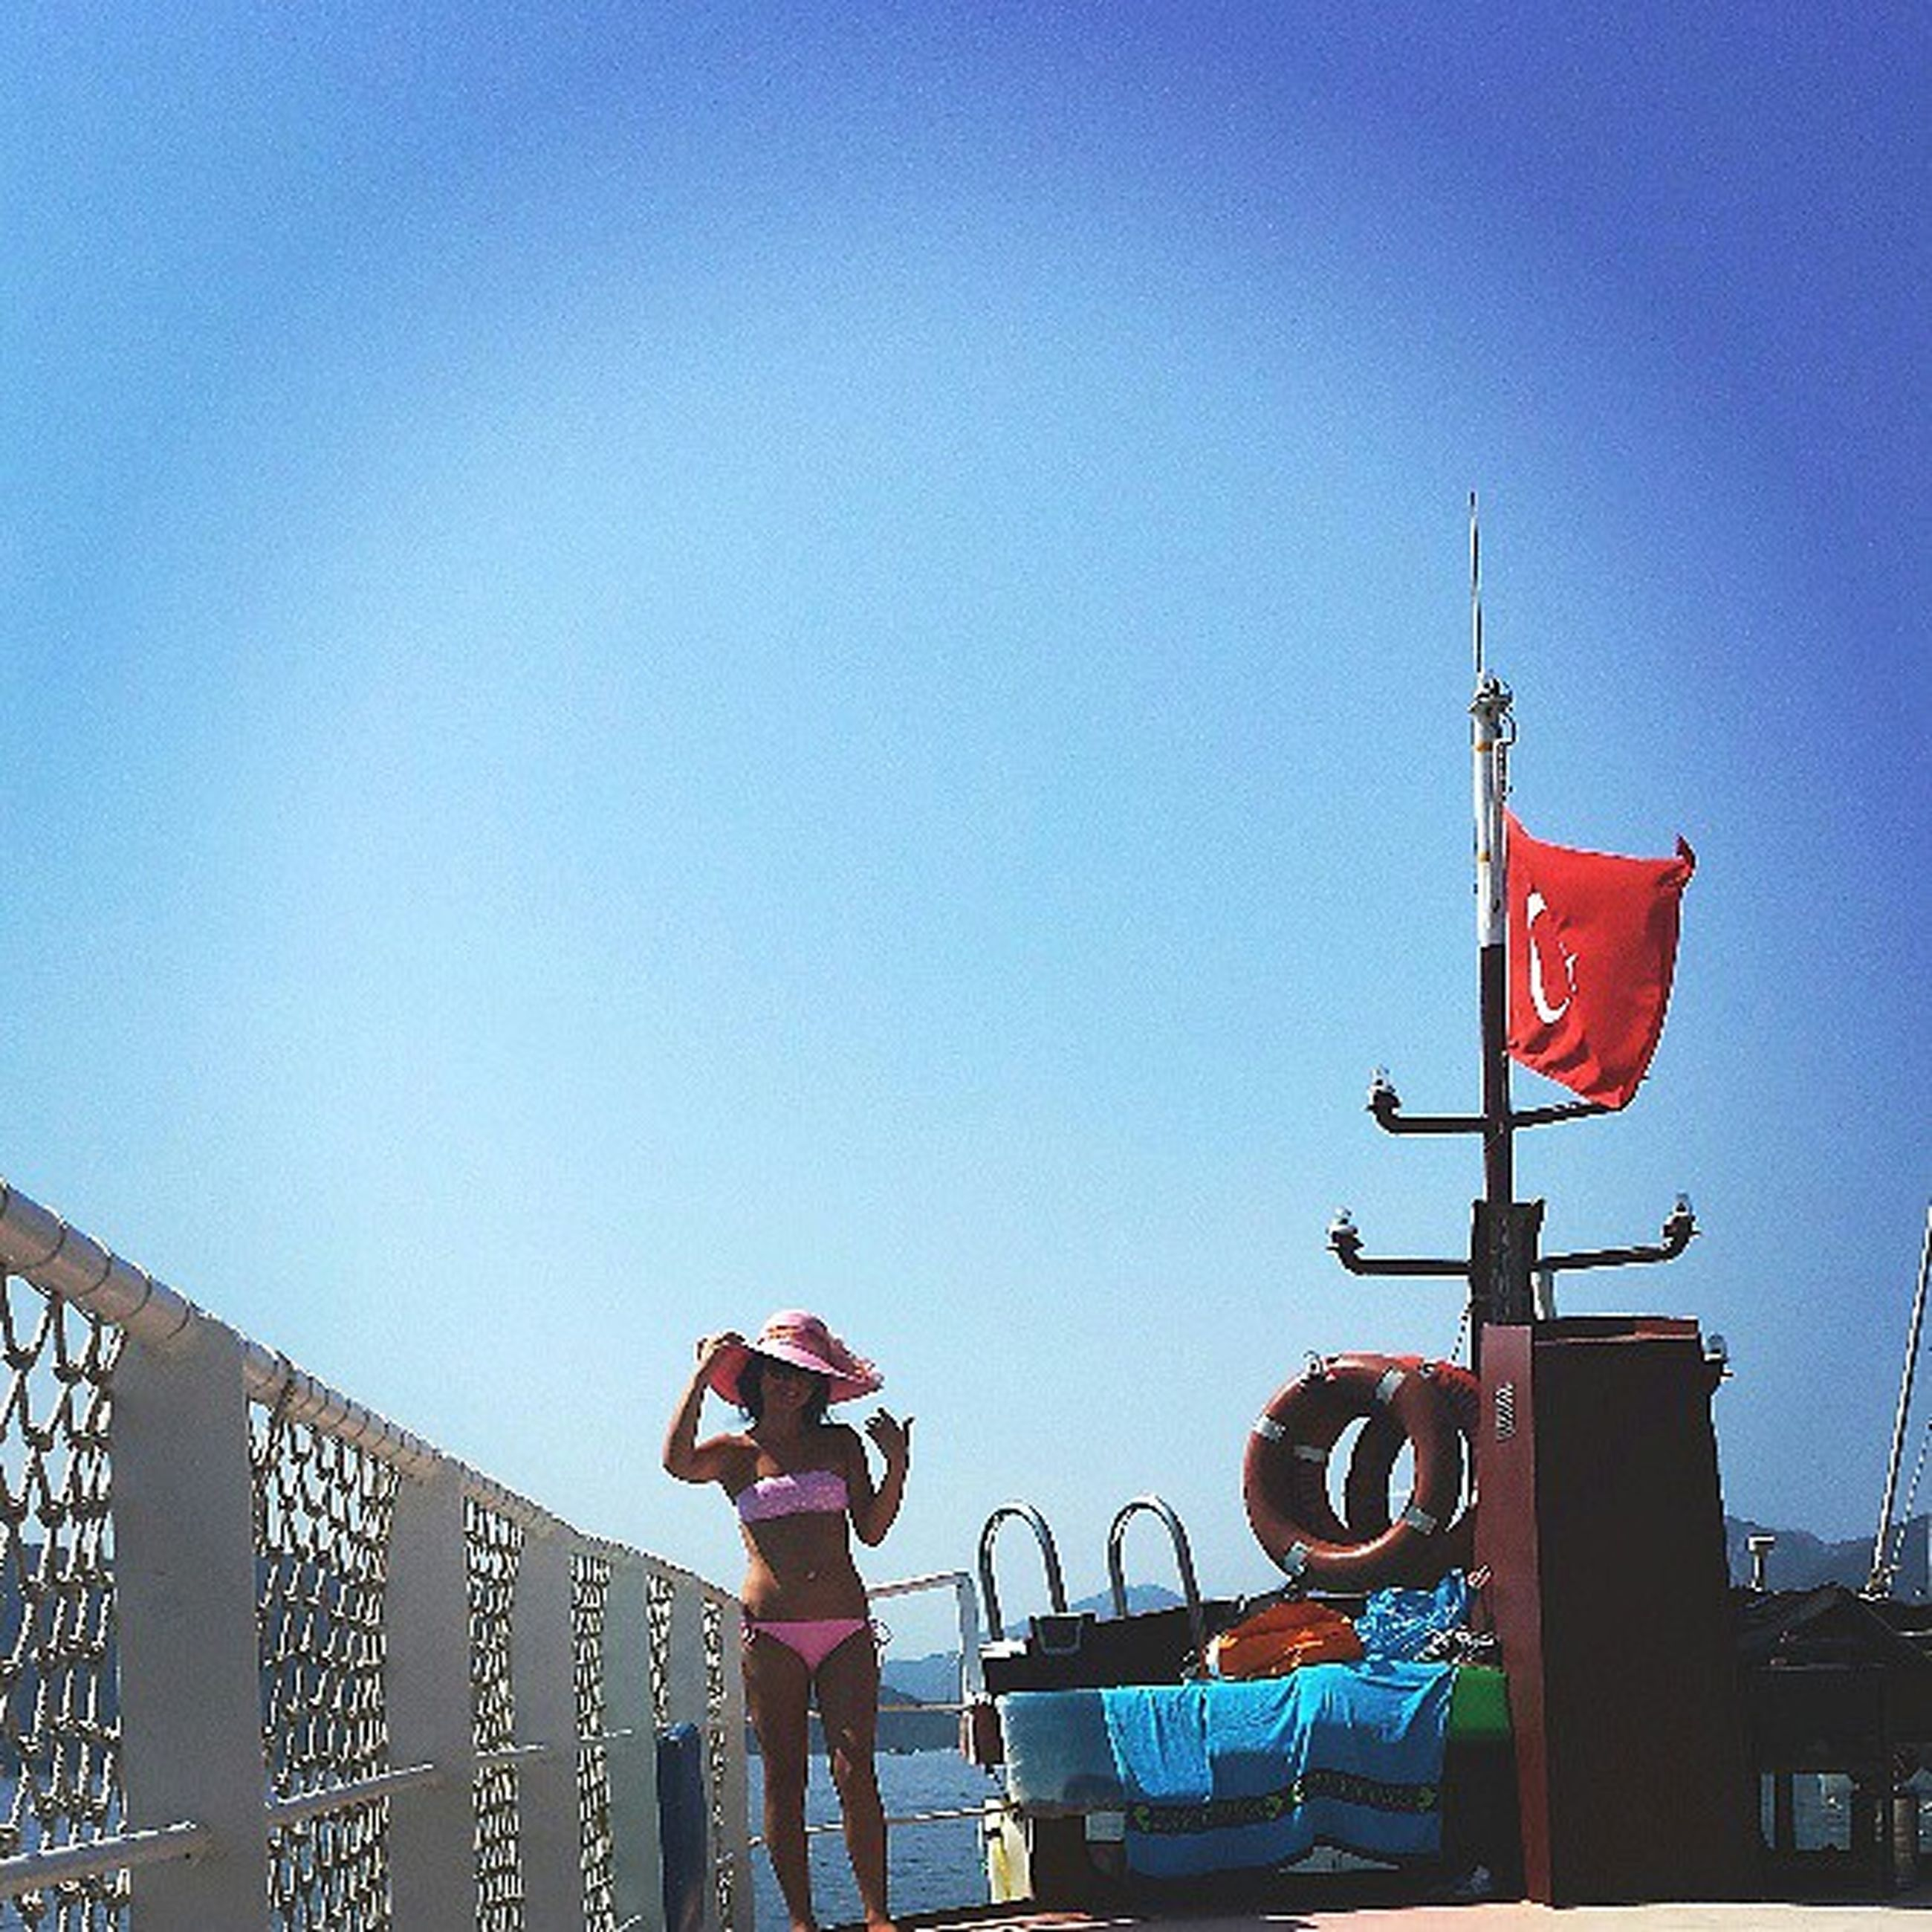 clear sky, copy space, blue, low angle view, red, leisure activity, lifestyles, men, flag, built structure, outdoors, standing, day, sky, travel, nautical vessel, person, amusement park